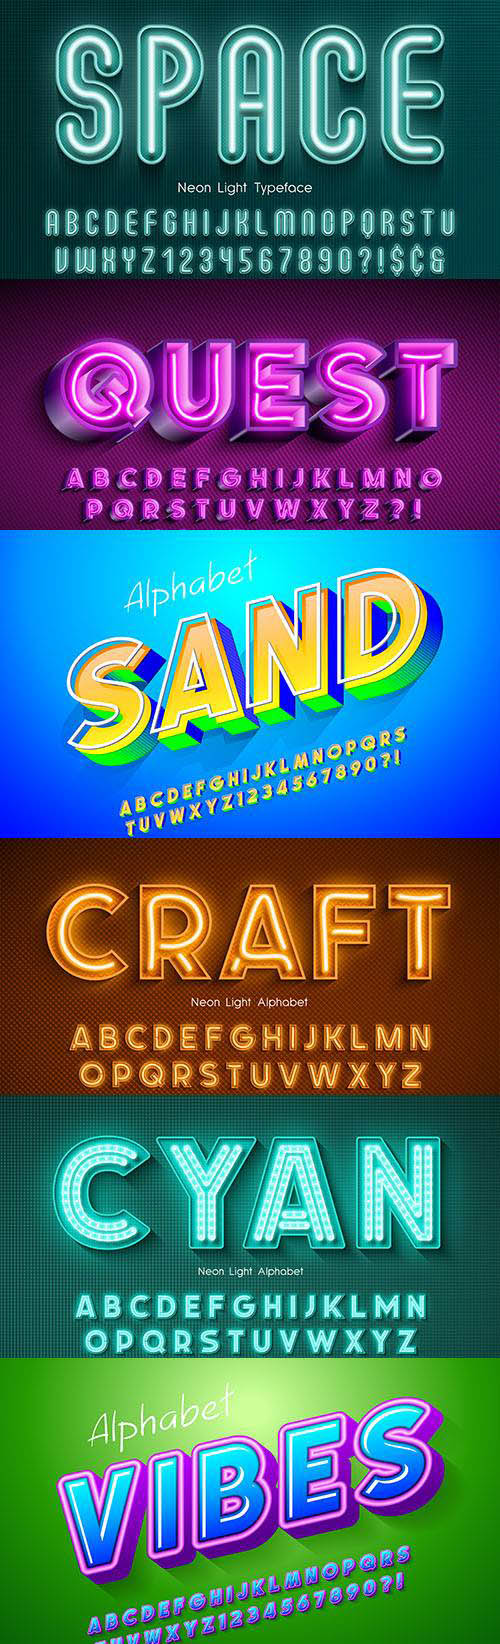 Editable font effect text collection illustration design 52